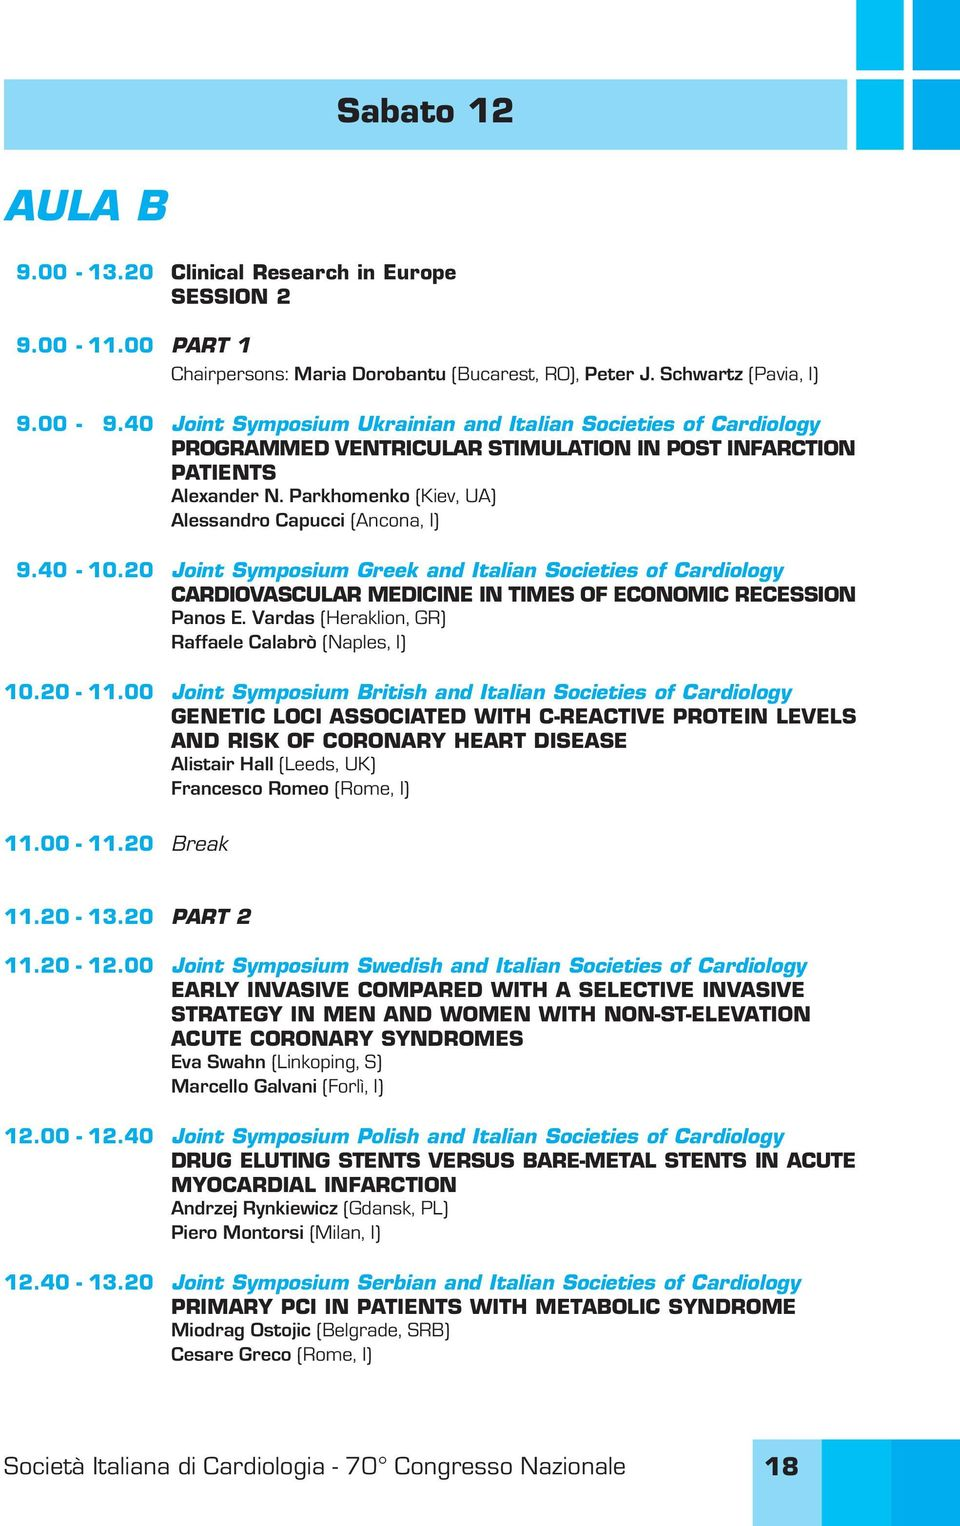 40-10.20 Joint Symposium Greek and Italian Societies of Cardiology CARDIOVASCULAR MEDICINE IN TIMES OF ECONOMIC RECESSION Panos E. Vardas (Heraklion, GR) Raffaele Calabrò (Naples, I) 10.20-11.